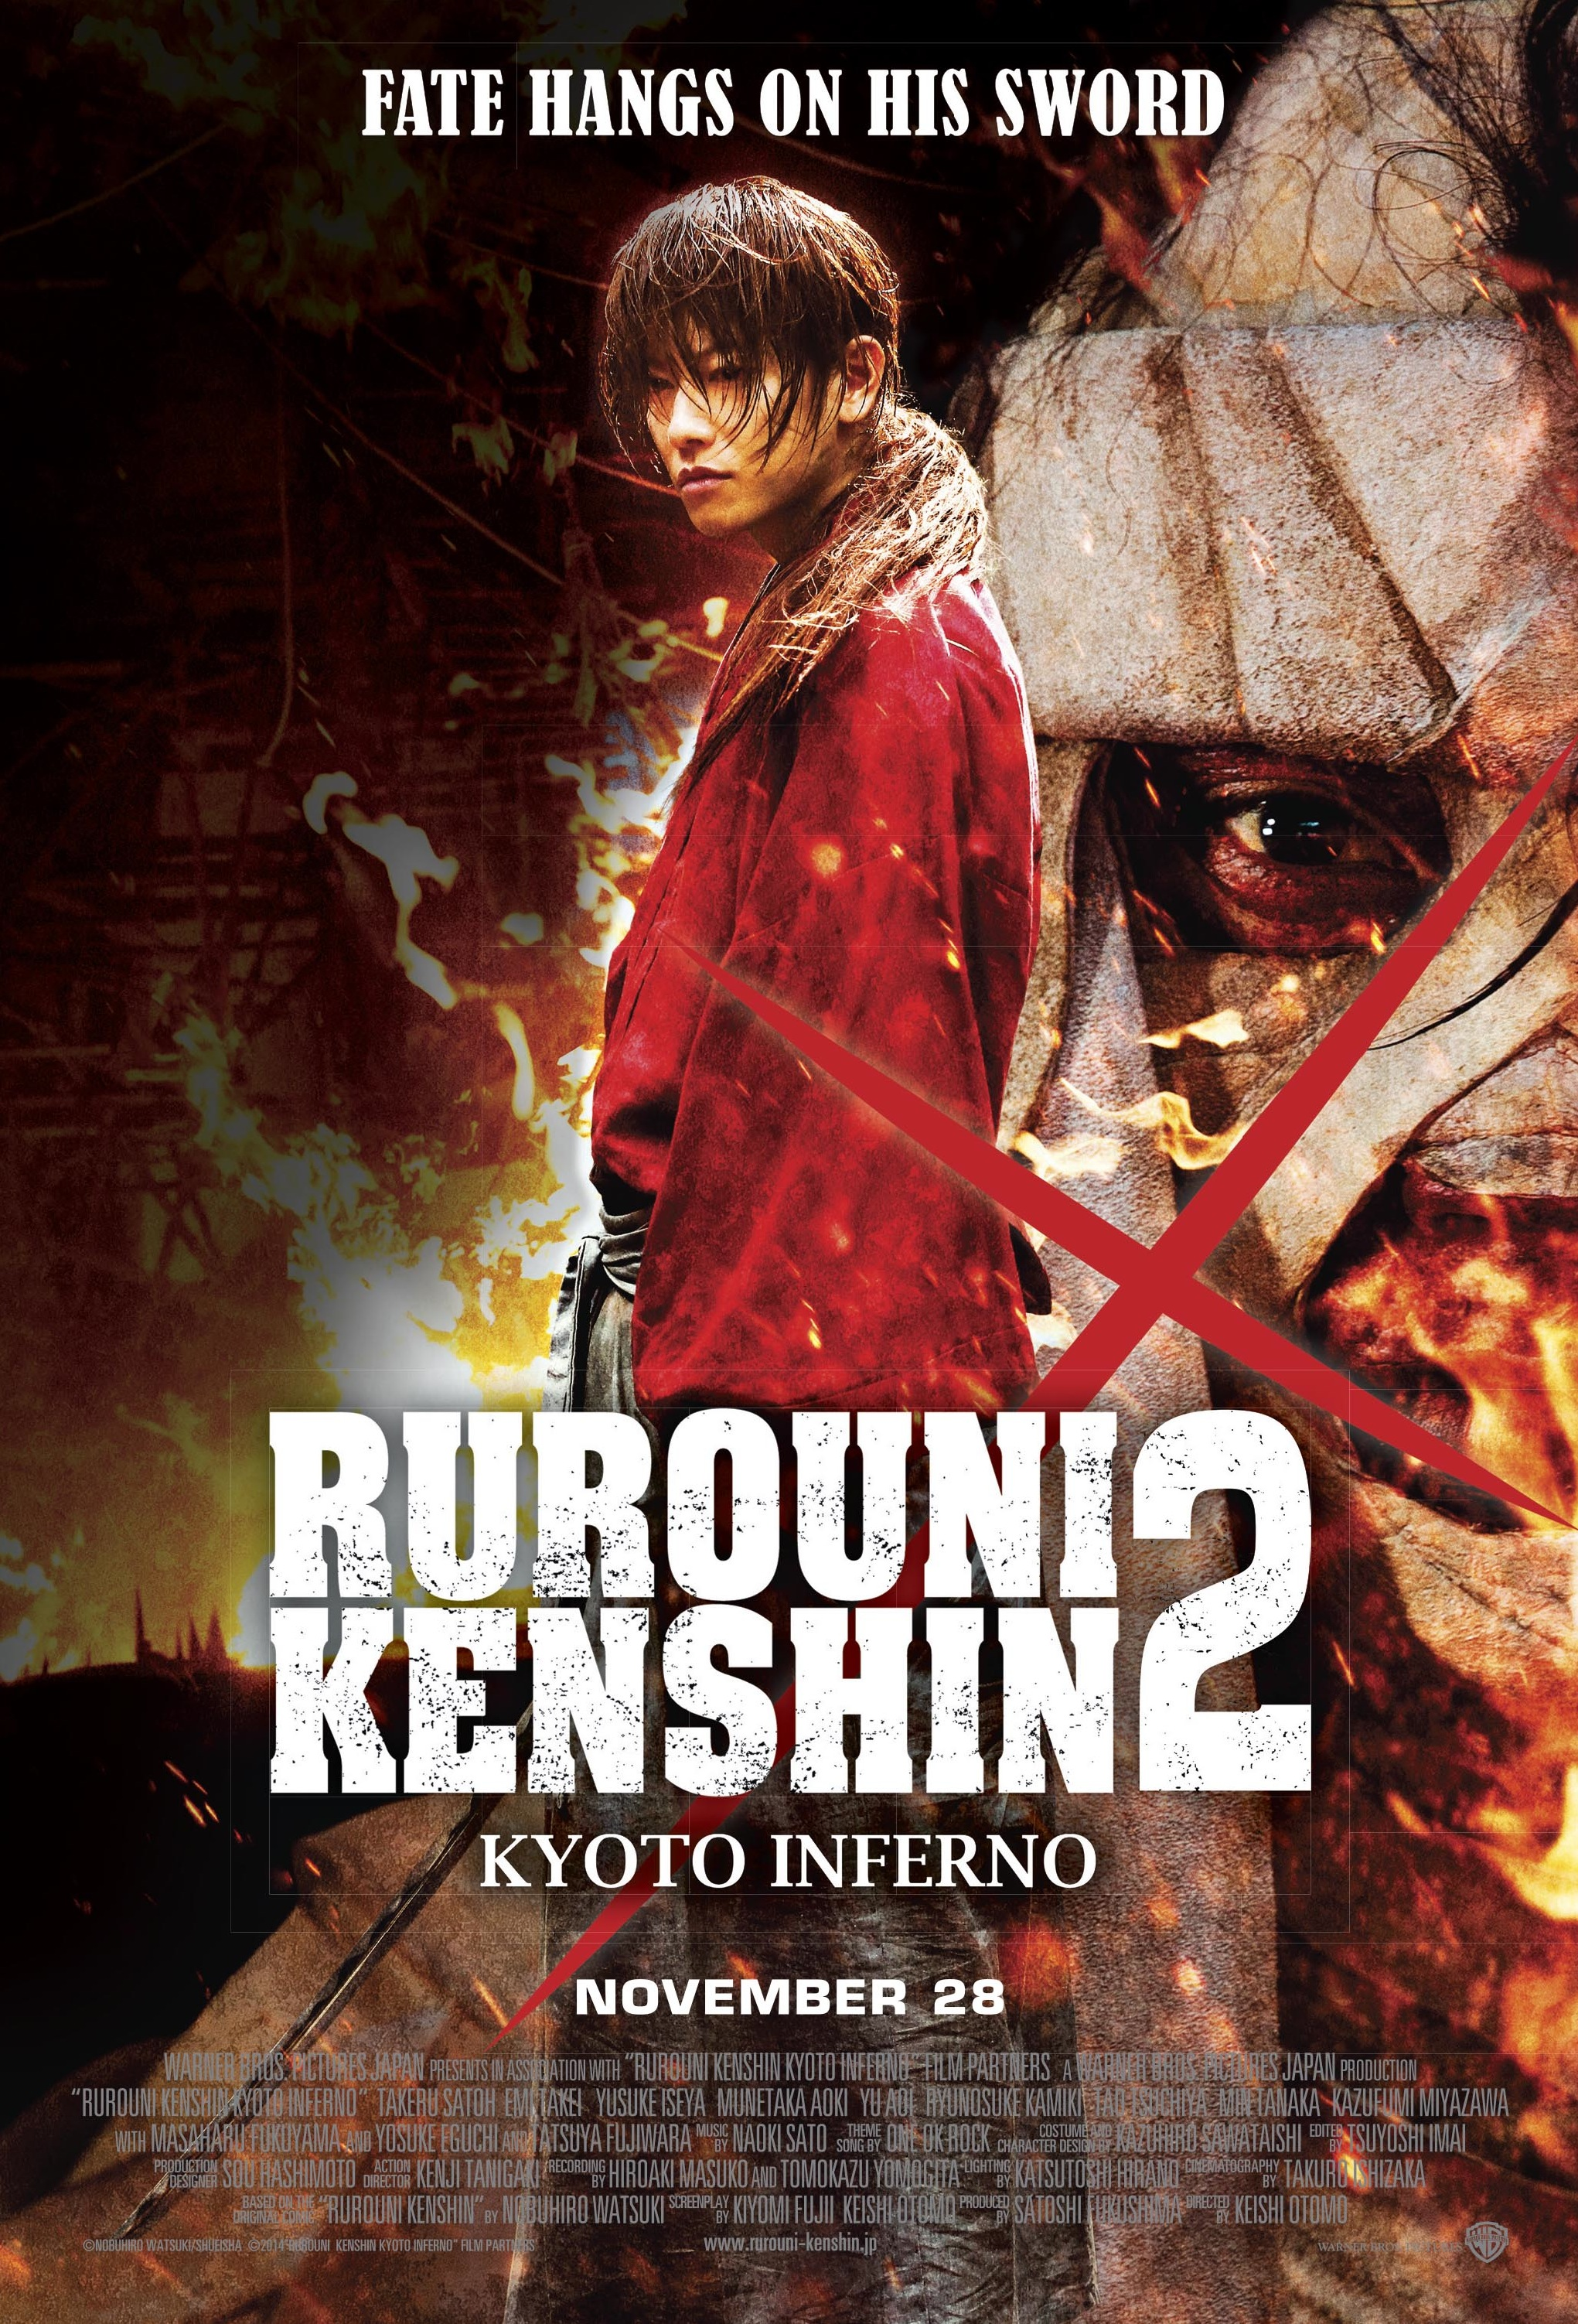 Rurouni Kenshin 2: Kyoto Inferno UK trailer